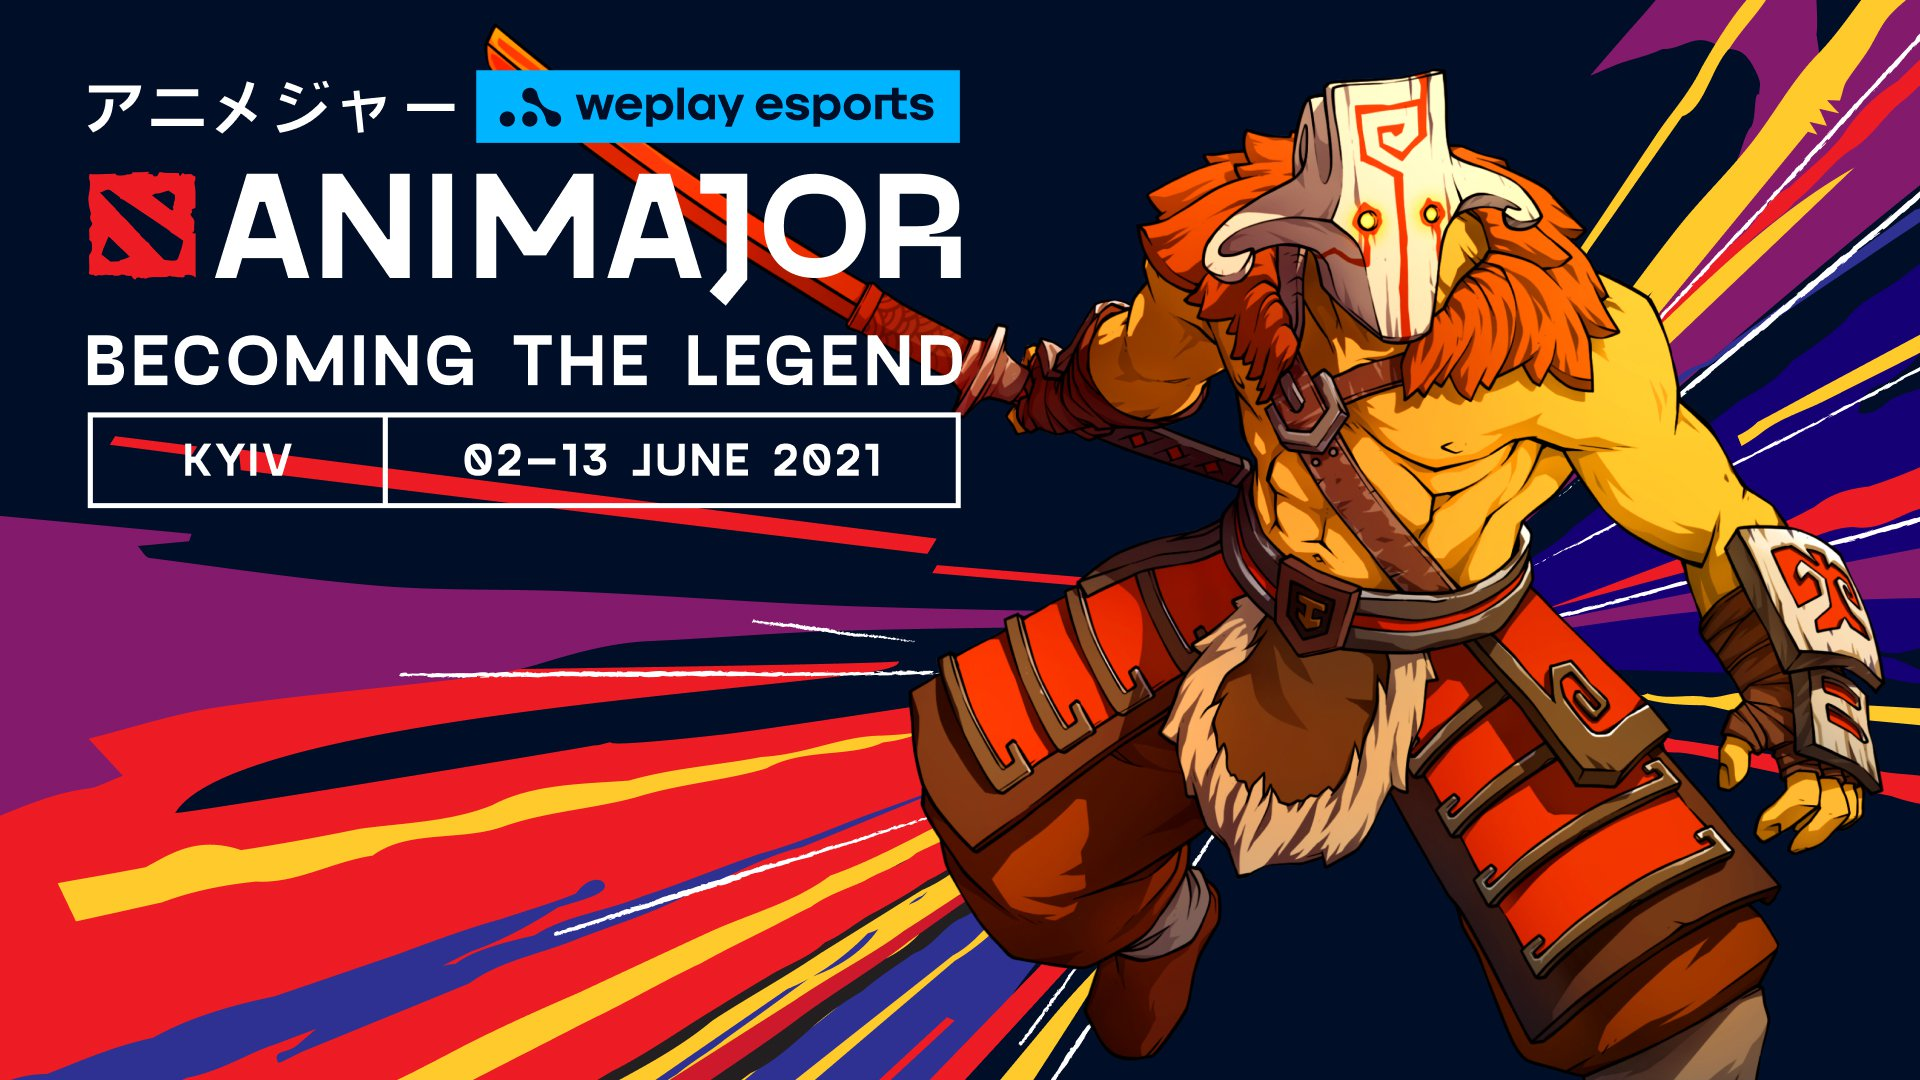 Our spicy tournament has already finished — check out everything about the WePlay AniMajor!